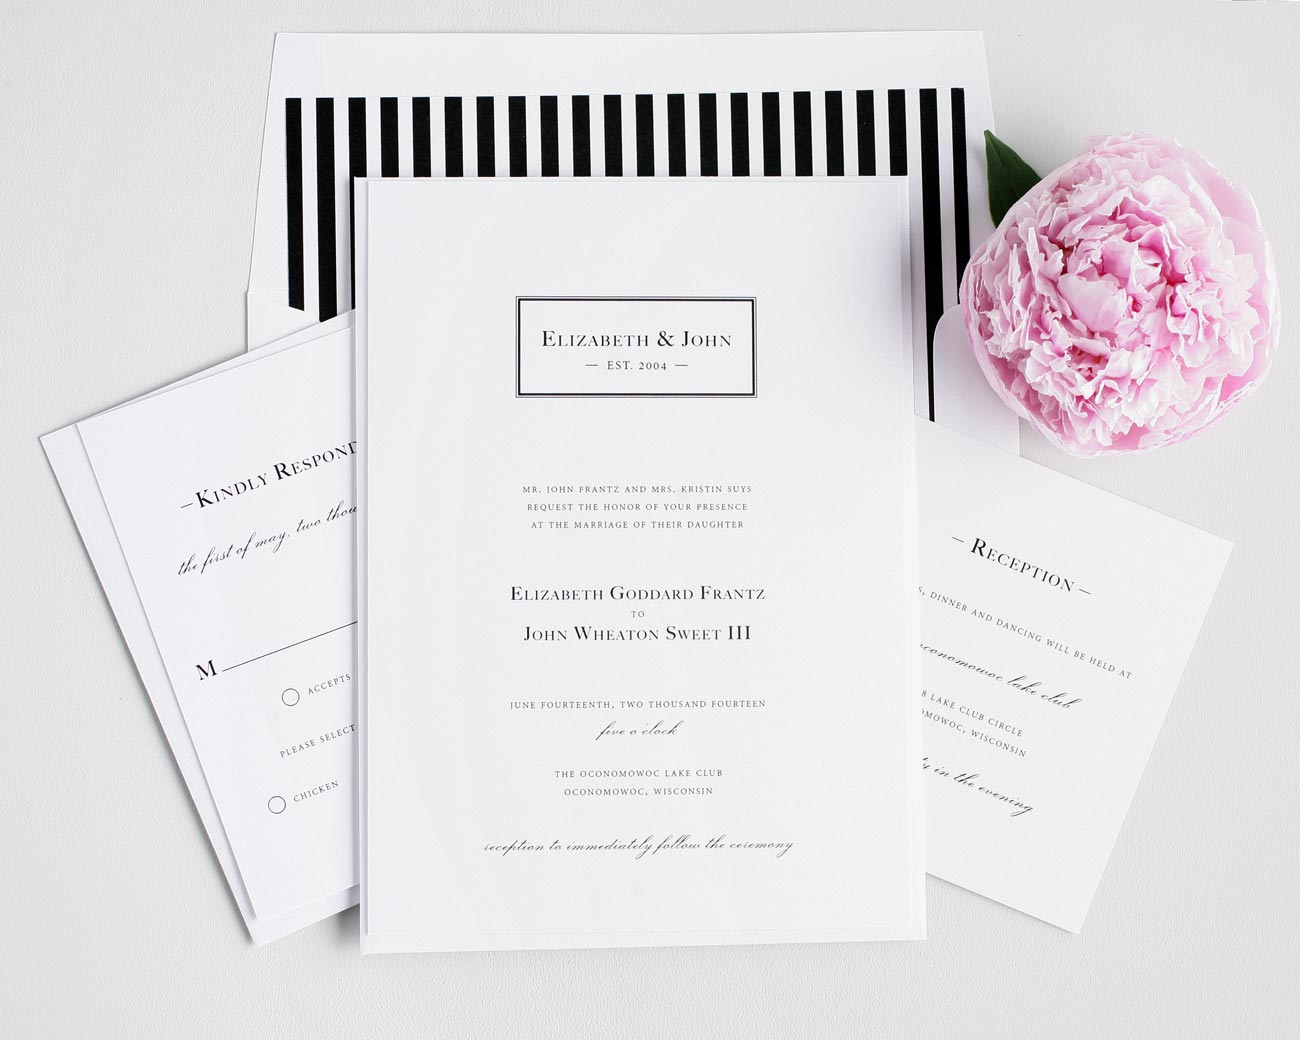 Modern Wedding Invitations Black And White Striped Wedding Invitations With  A Monogram